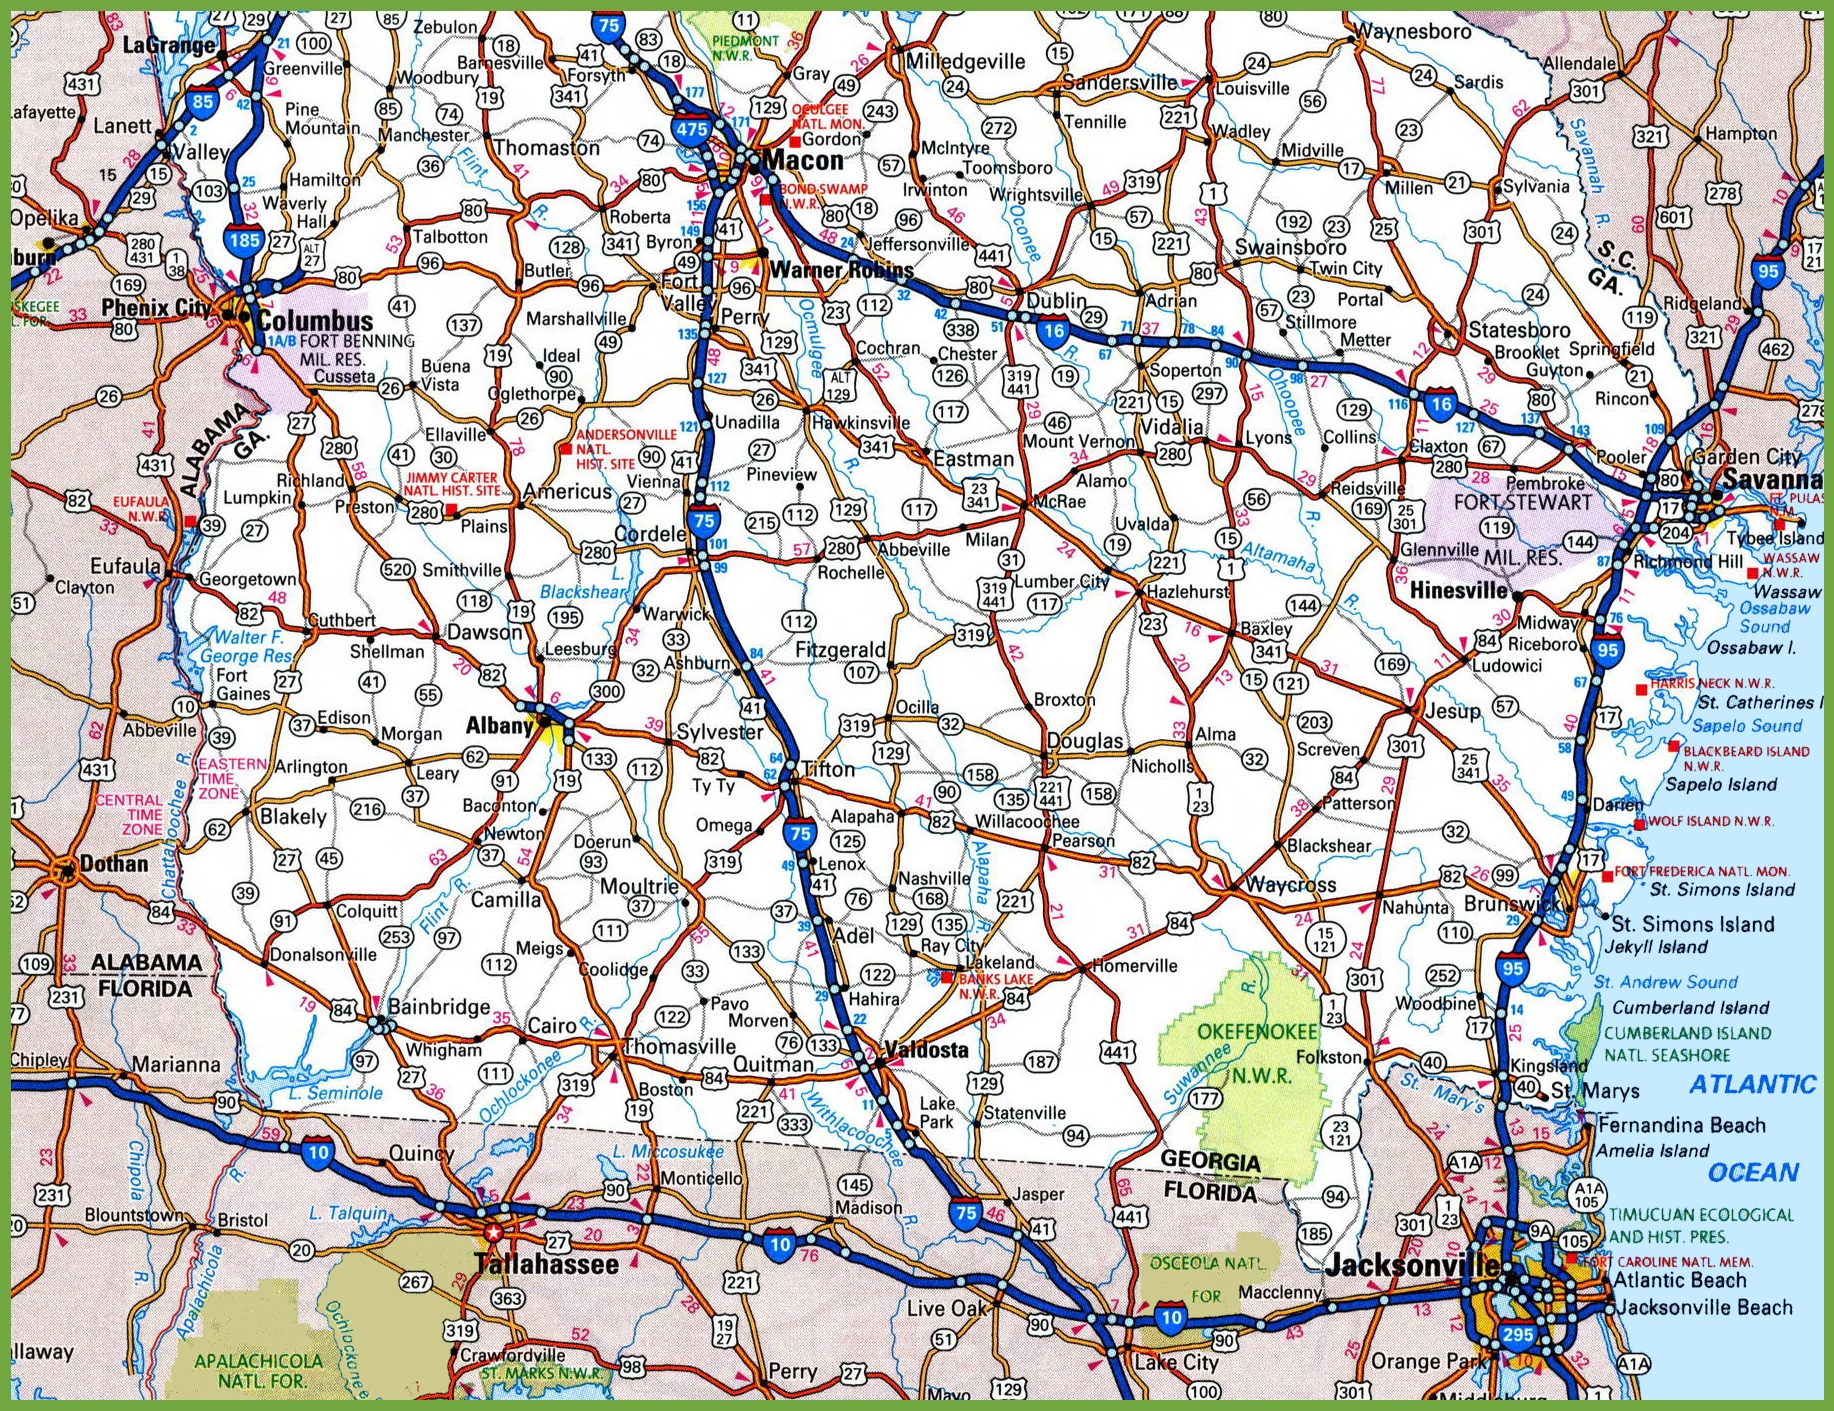 Map of Southern Georgia Map Ga on alabama map, nh map, gra map, al map, georgia road map, et map, ri map, atlanta map, tennesse map, ca map, va map, oh map, nc map, usa map, fl map, georgia counties map, mi map, georgia major cities map, wx map, mn map,